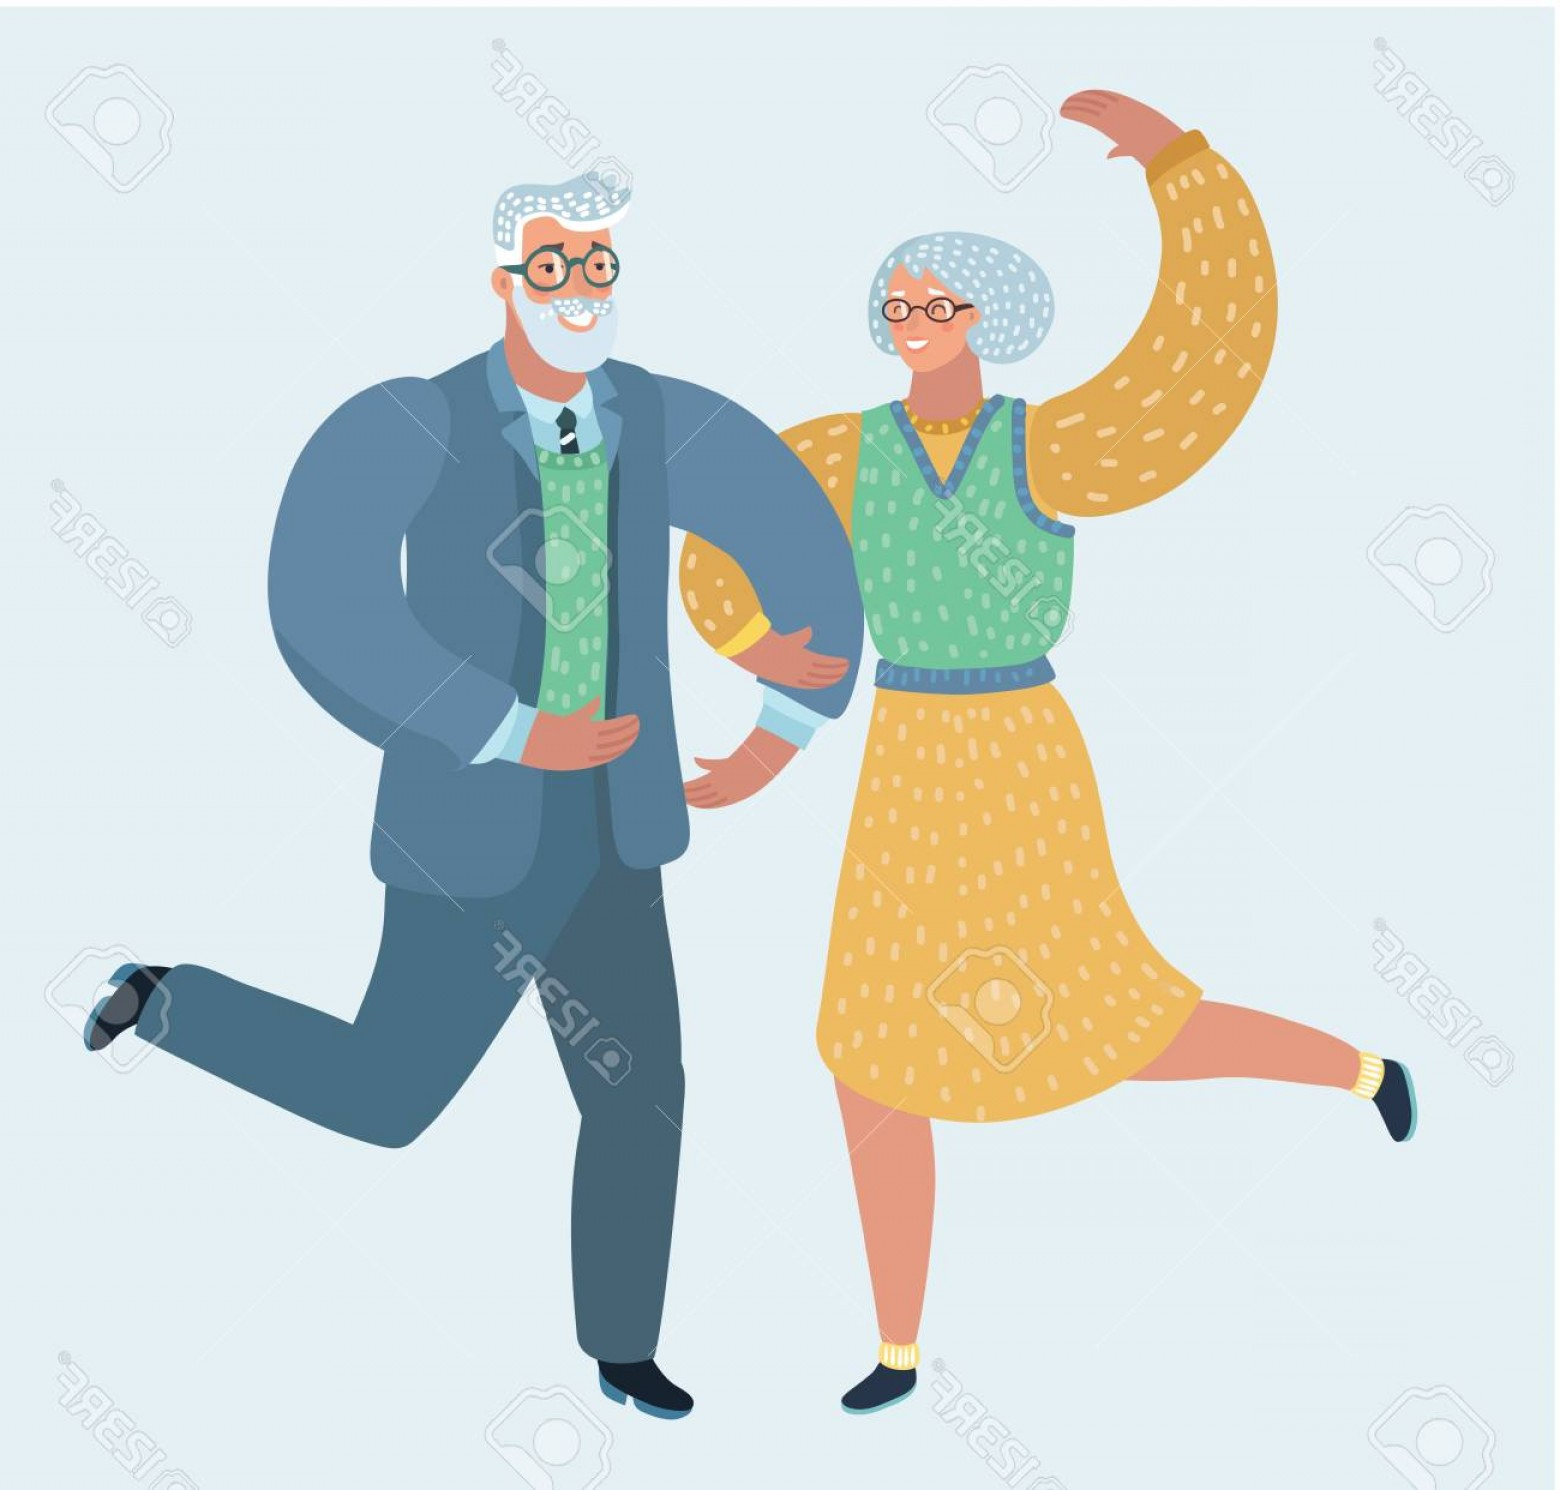 Happy Elderly Vector: Photostock Vector Vector Illustration Of Happy Elderly Couple Dancing Human Characters On White Background